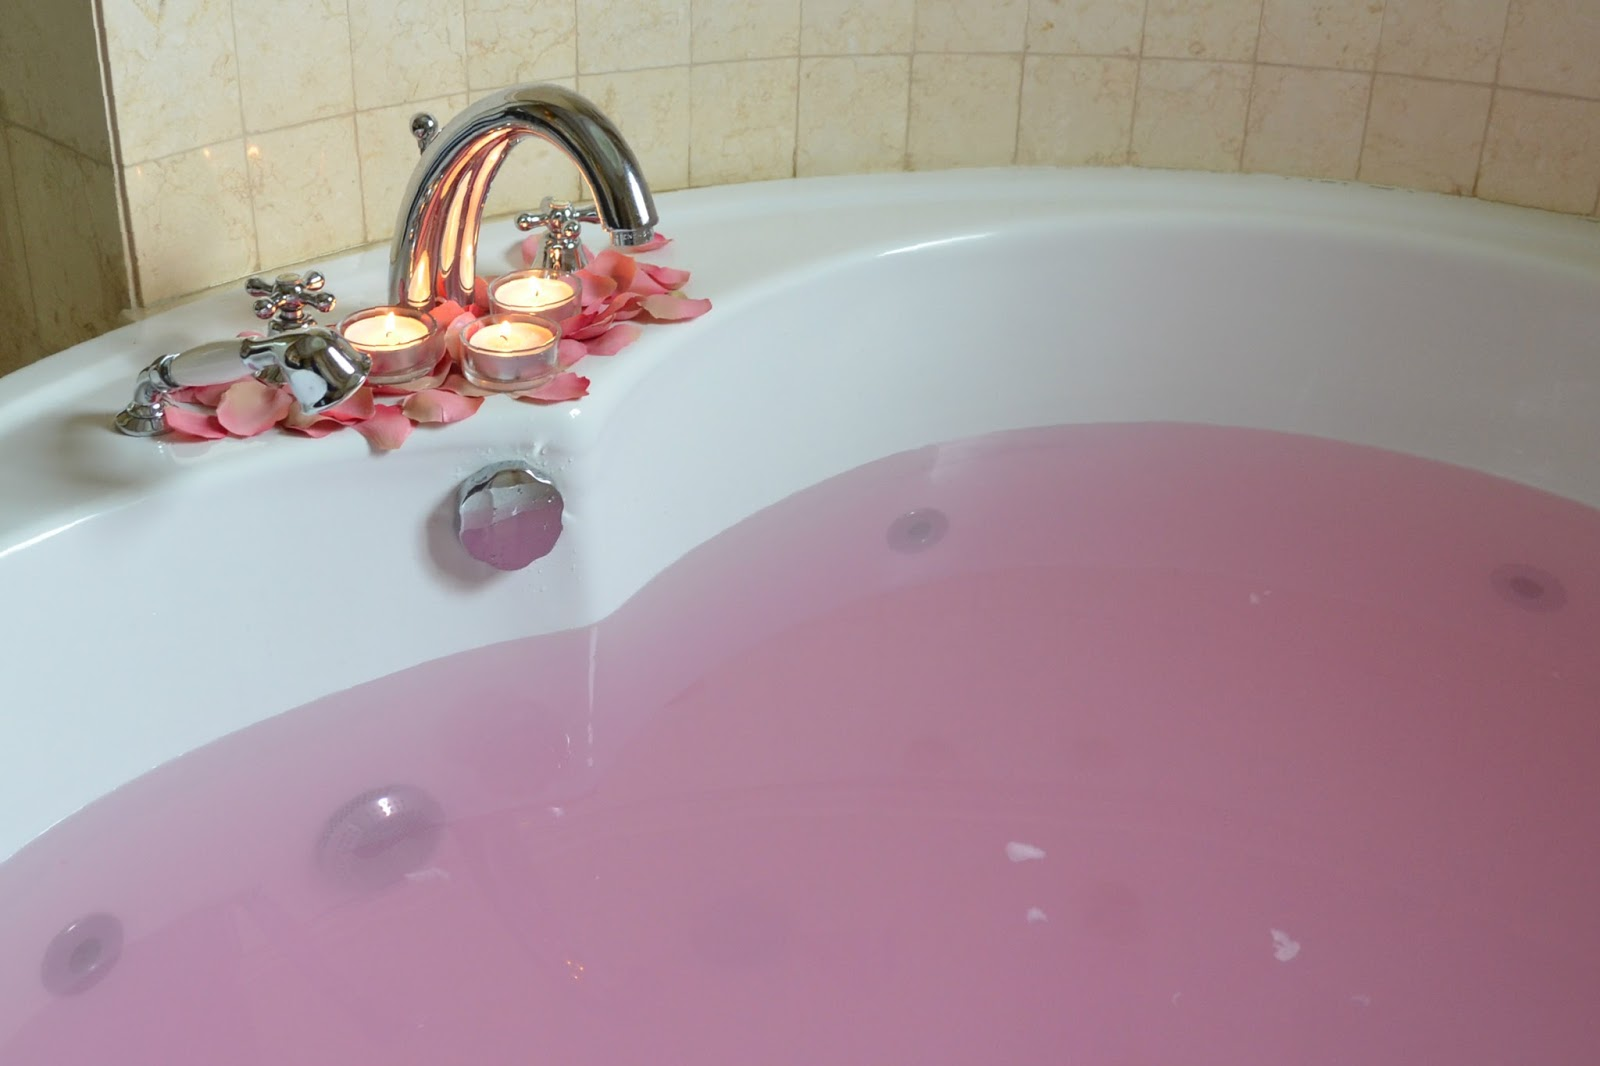 When You Sniff The Bath Bomb, The Scent Is Very Subtle Compared To Most  Others. Only Once Itu0027s Immersed In Water Does The Scent Hit You, With Hints  Of ...